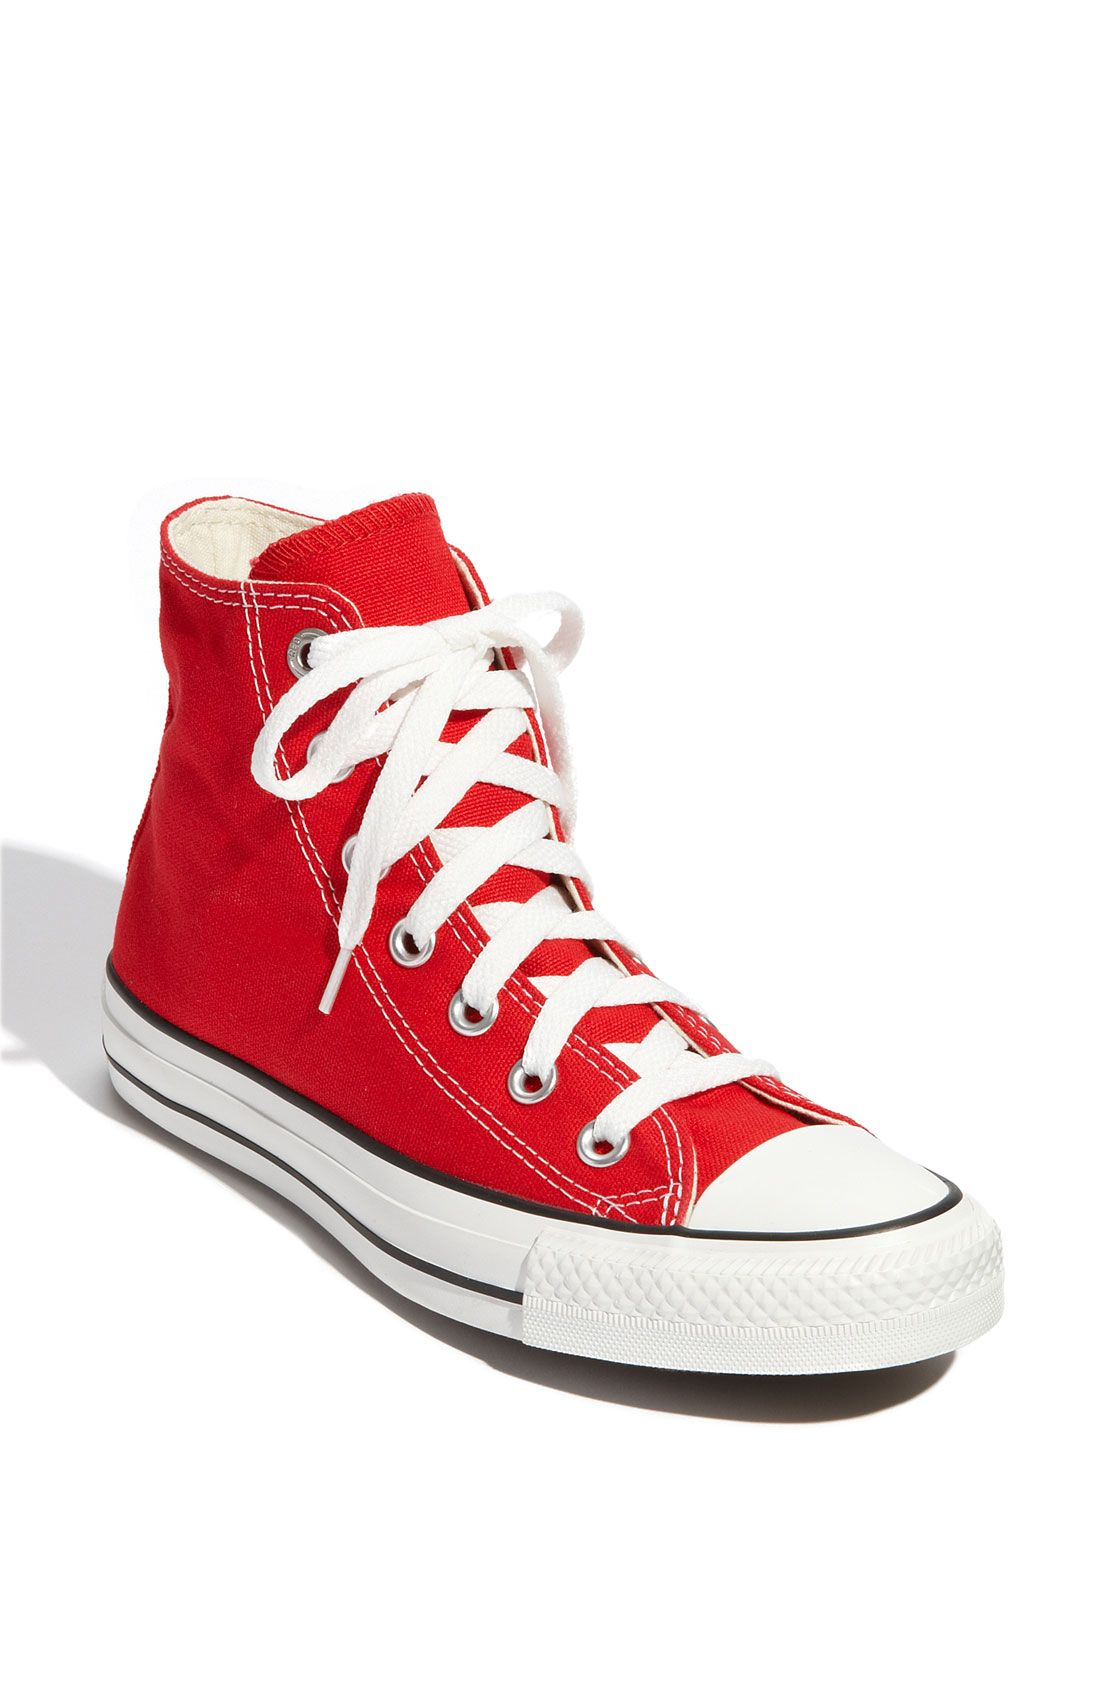 55cd066abd ValentinesDay gift idea: Converse Chuck Taylor® High Top Sneaker ...